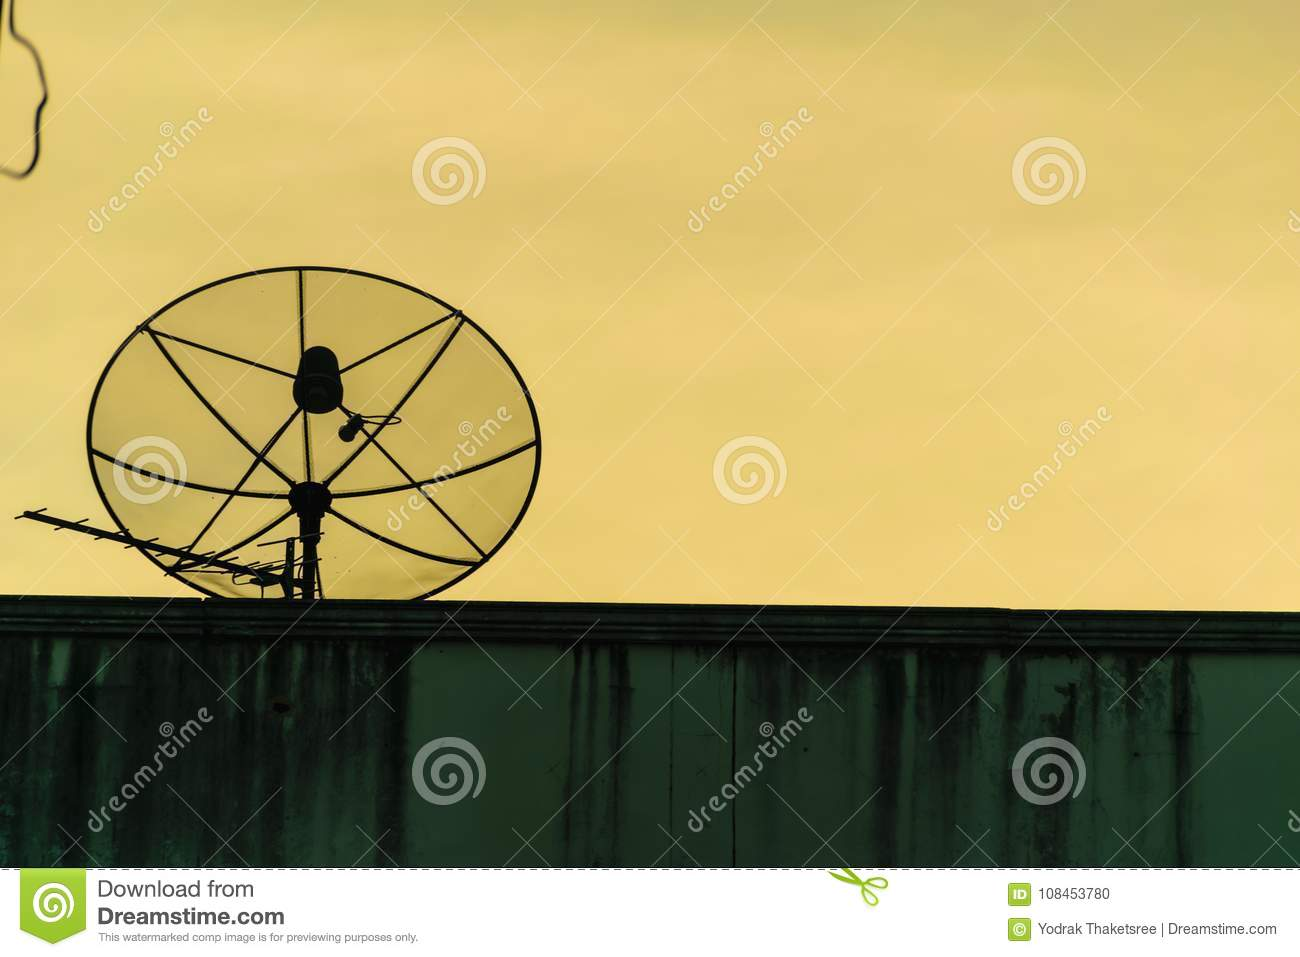 hight resolution of satellite dish silhouette communication antena radio for tv on building brick with gold sky background